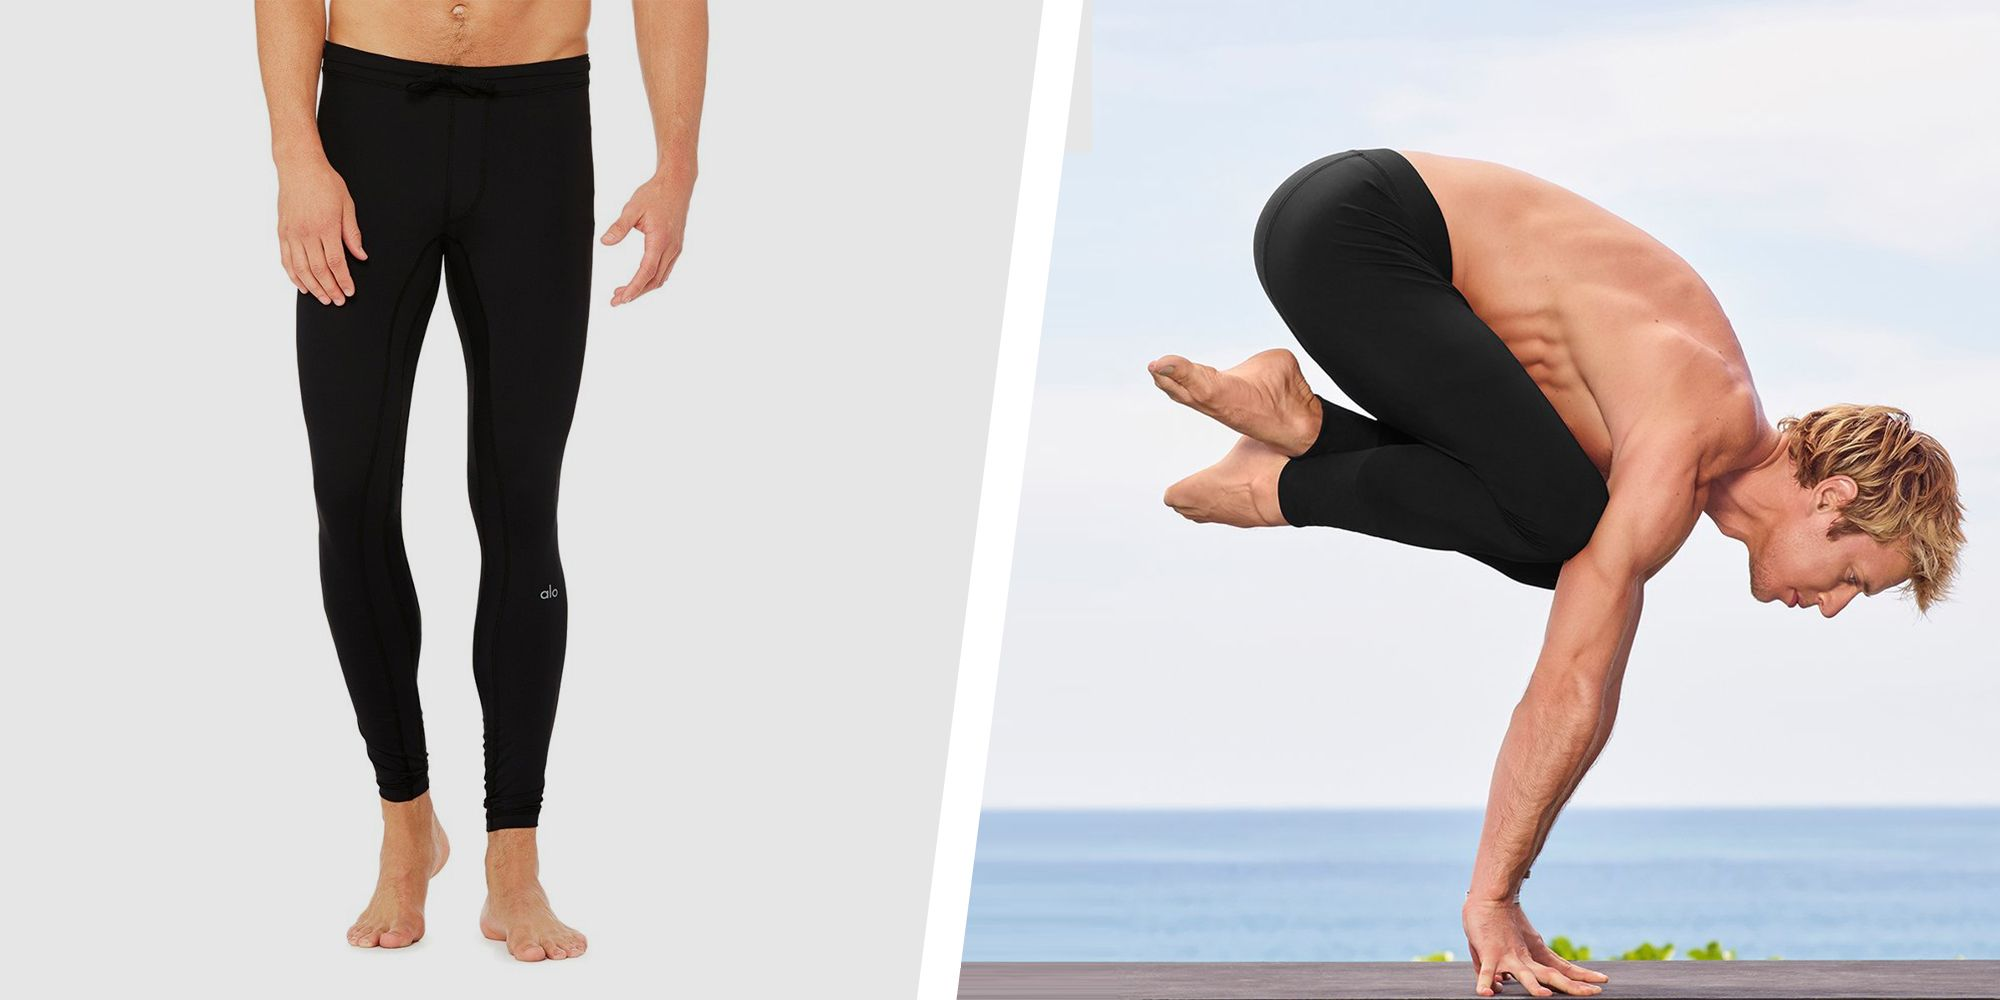 The 12 Best Yoga Clothes for Men to Focus on Their Flow